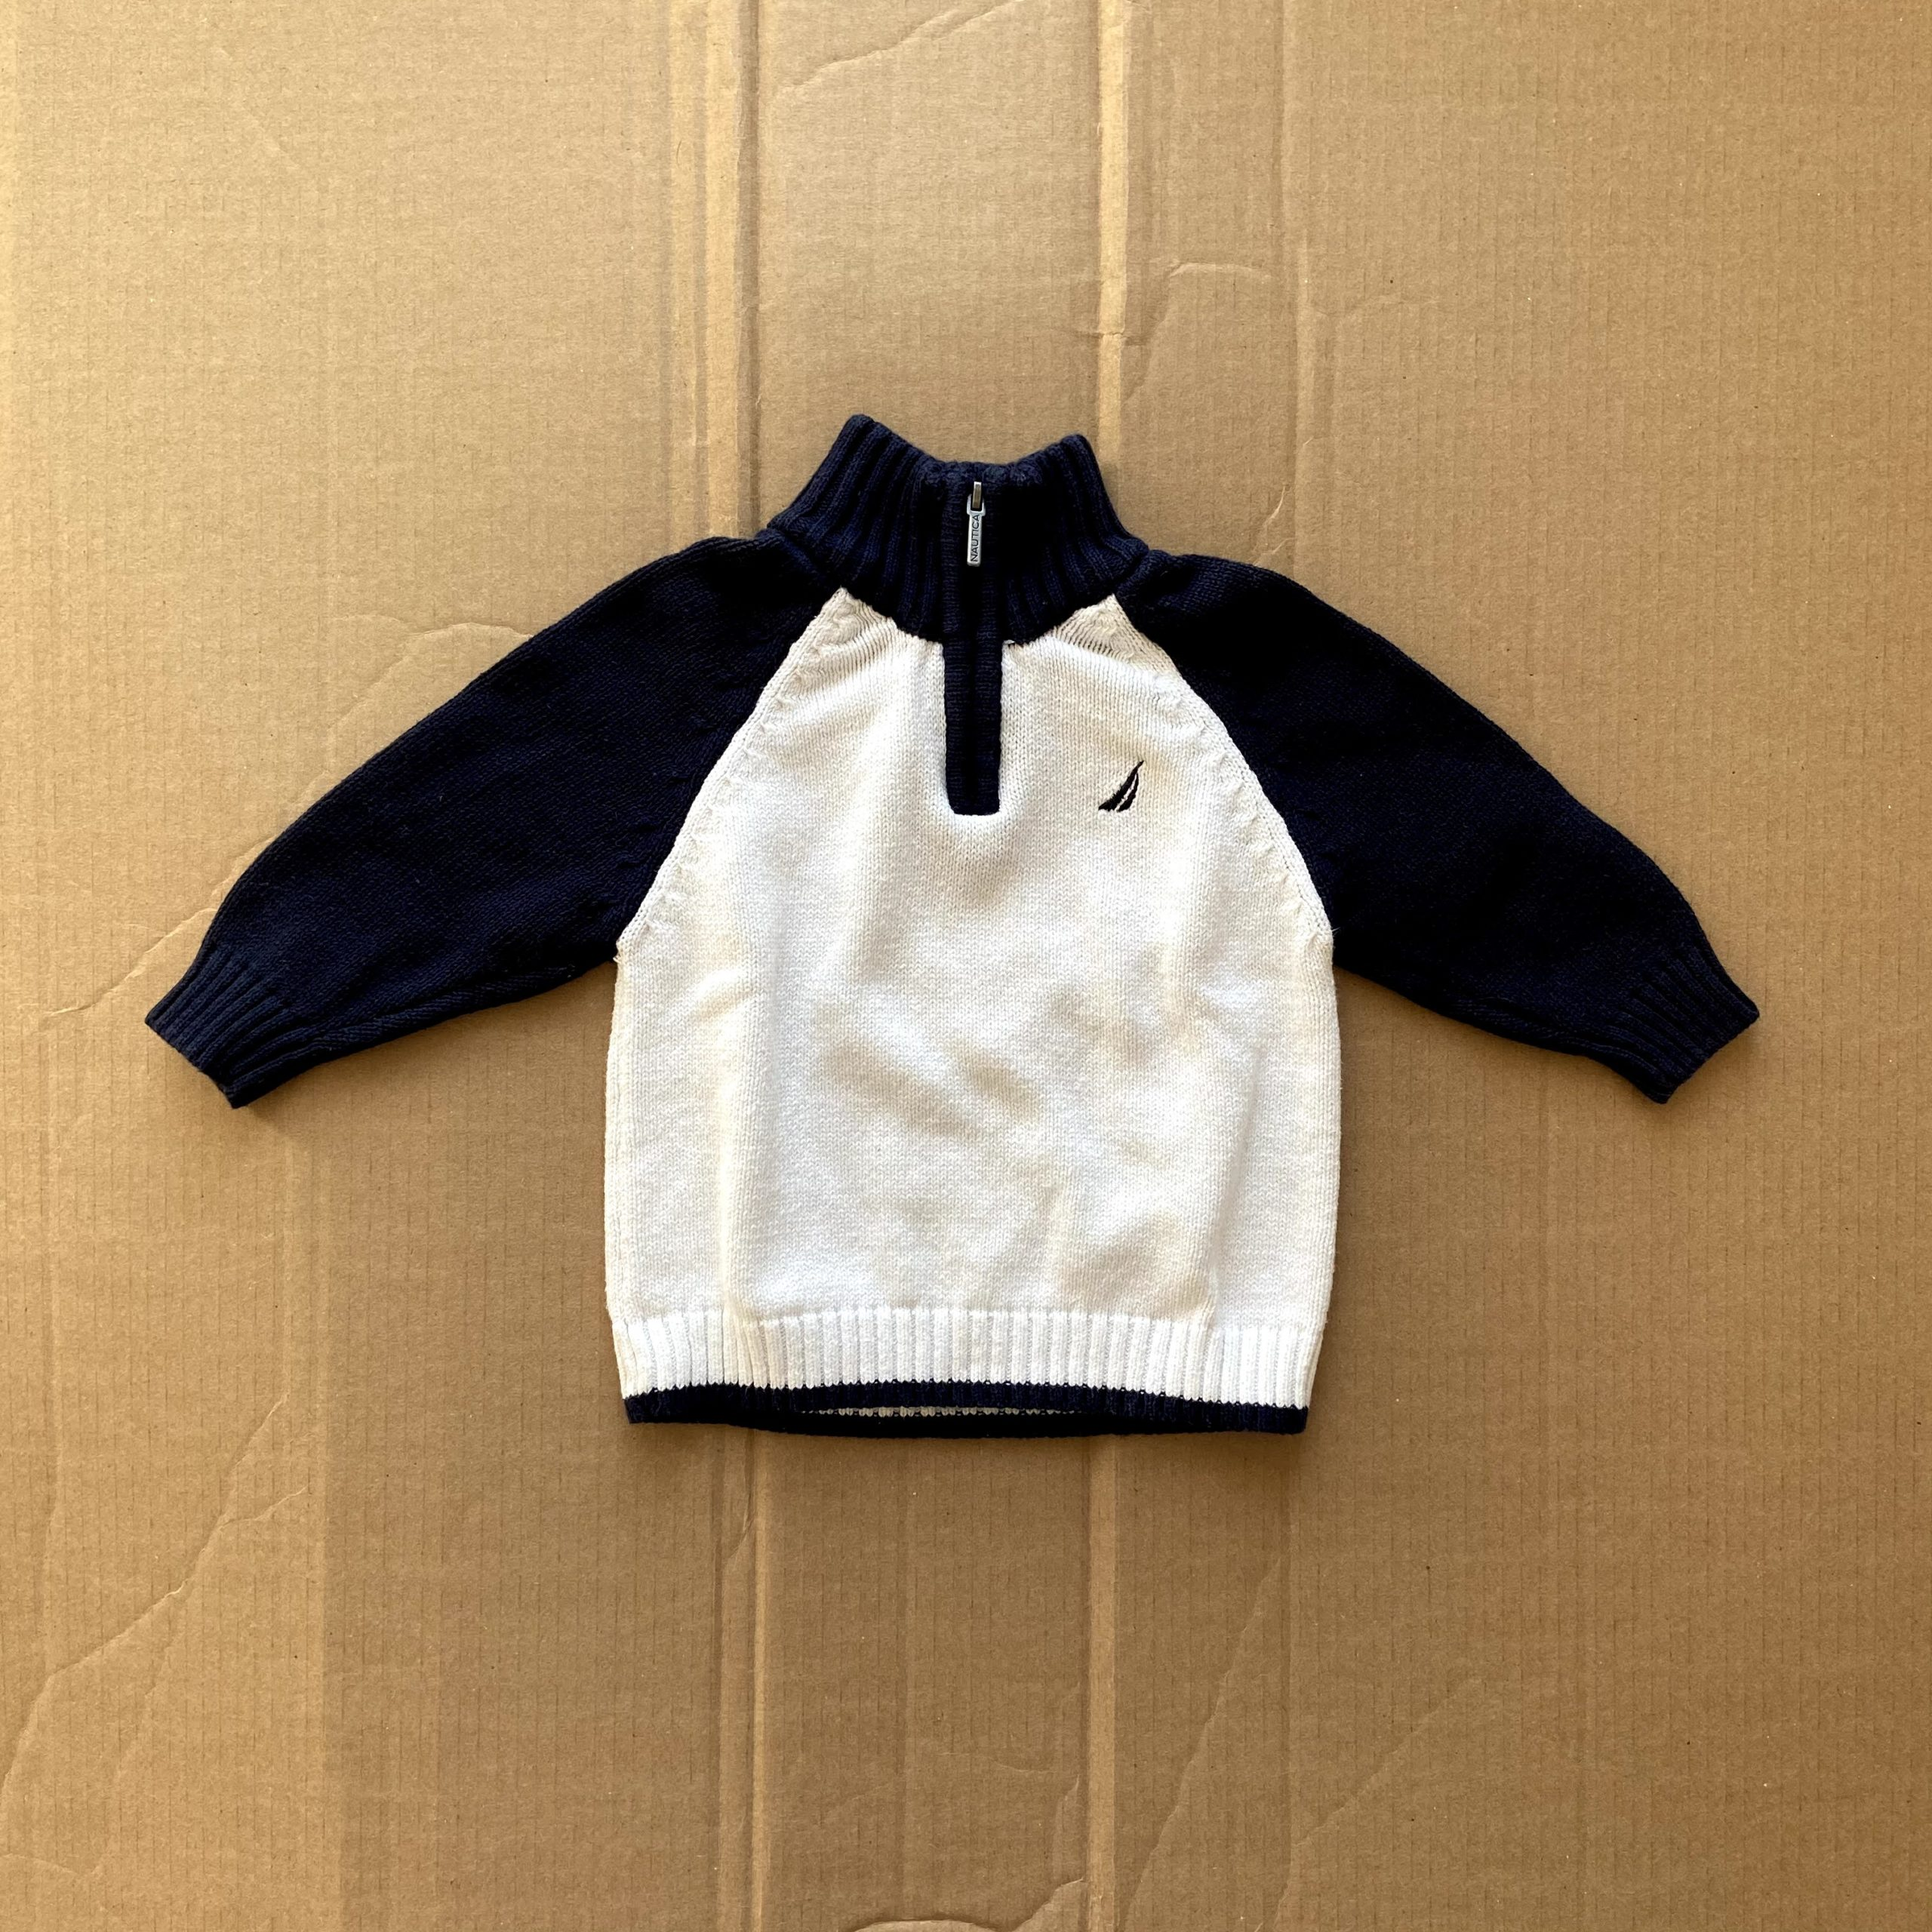 Nautica long sleeve knit zip up pullover sweater navy white